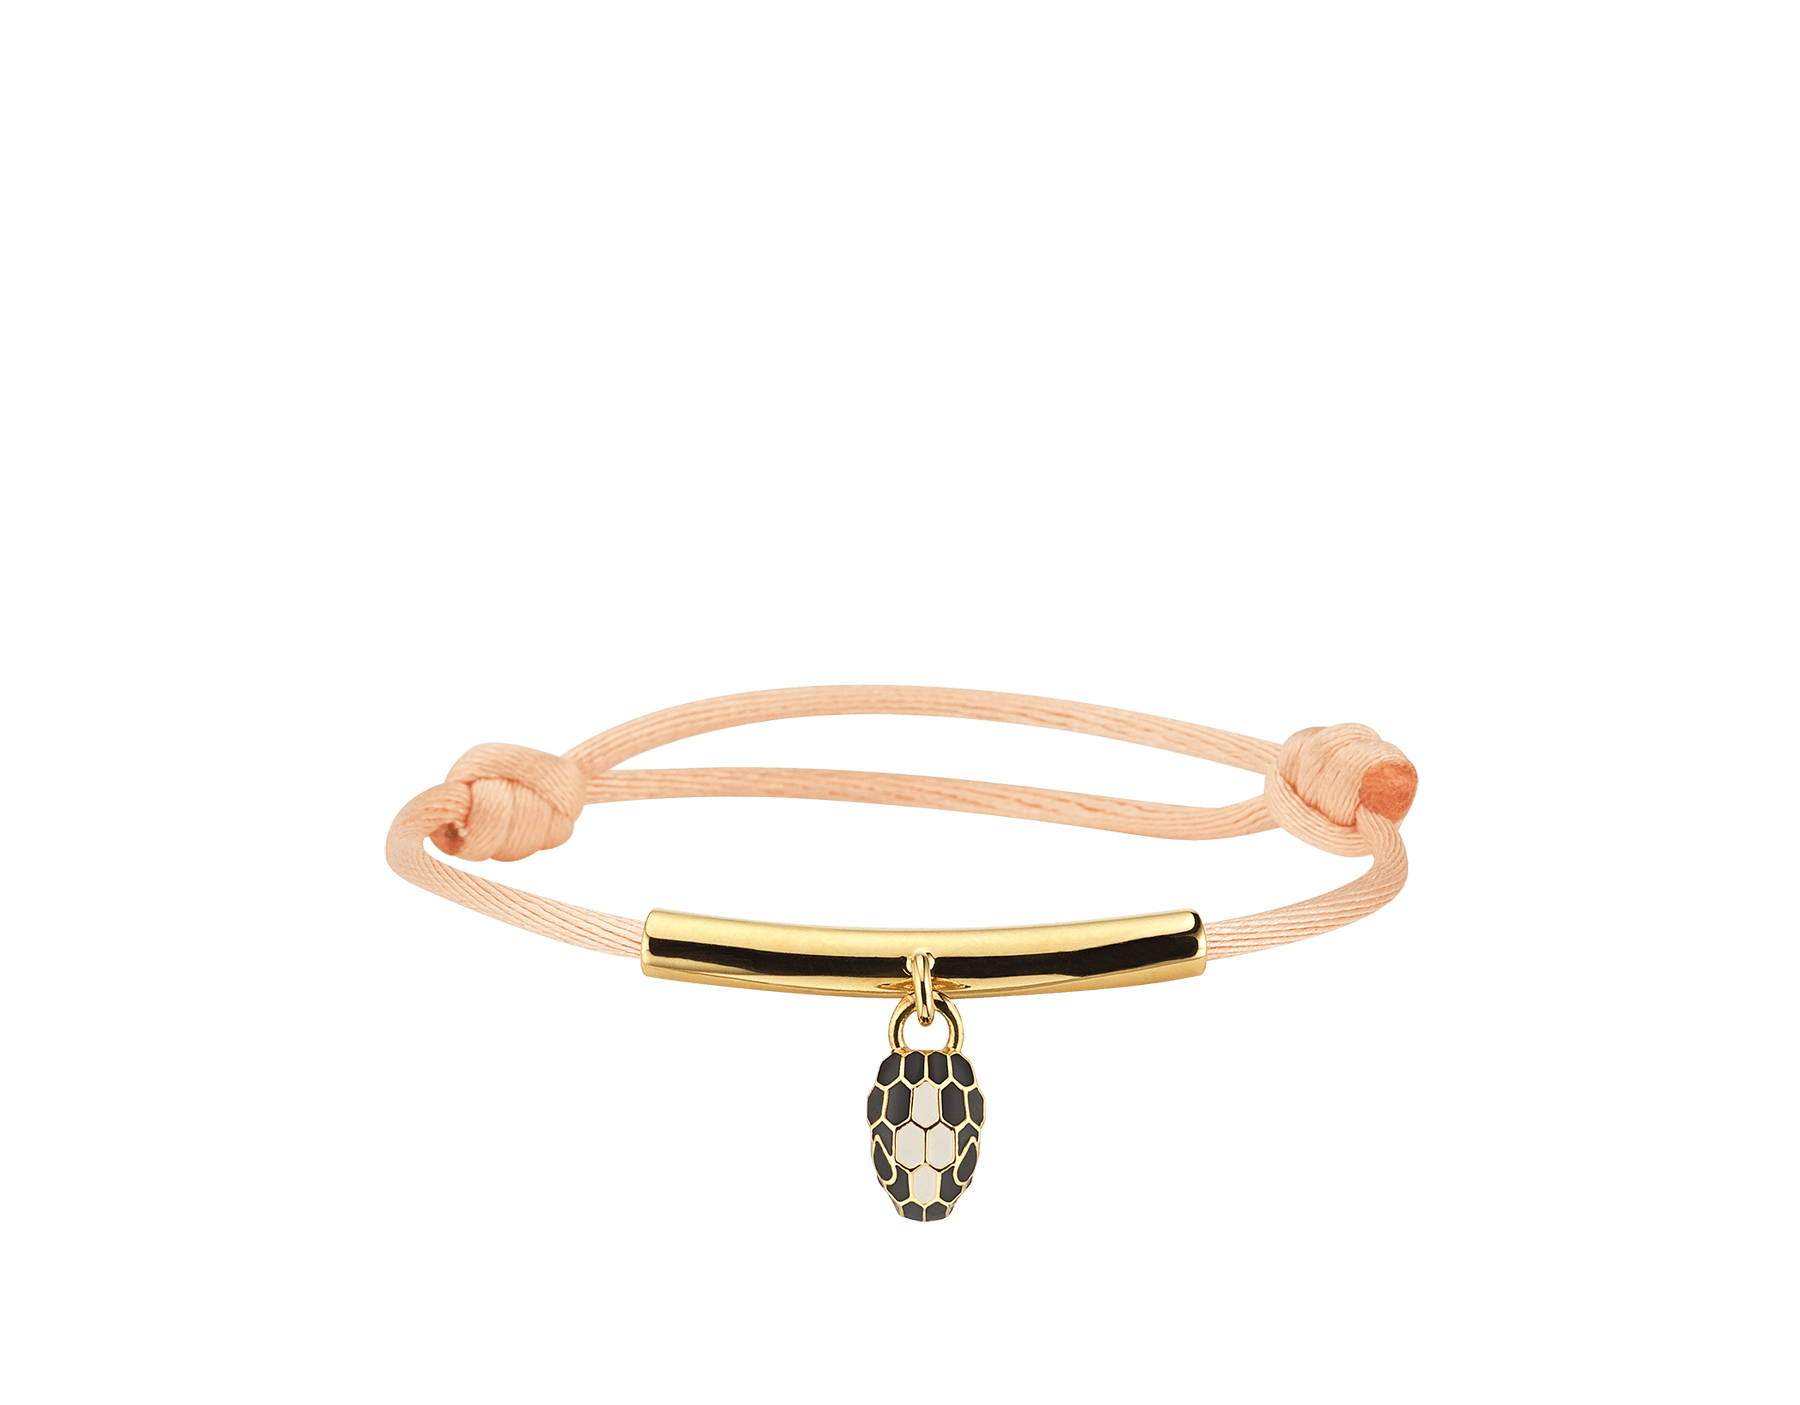 """""""Serpenti Forever"""" bracelet in Mimetic Jade green fabric, with a gold-plated brass plate. Iconic snakehead charm enameled in black and white agate, with seductive black enamel eyes. SERP-MINISTRINGa image 1"""